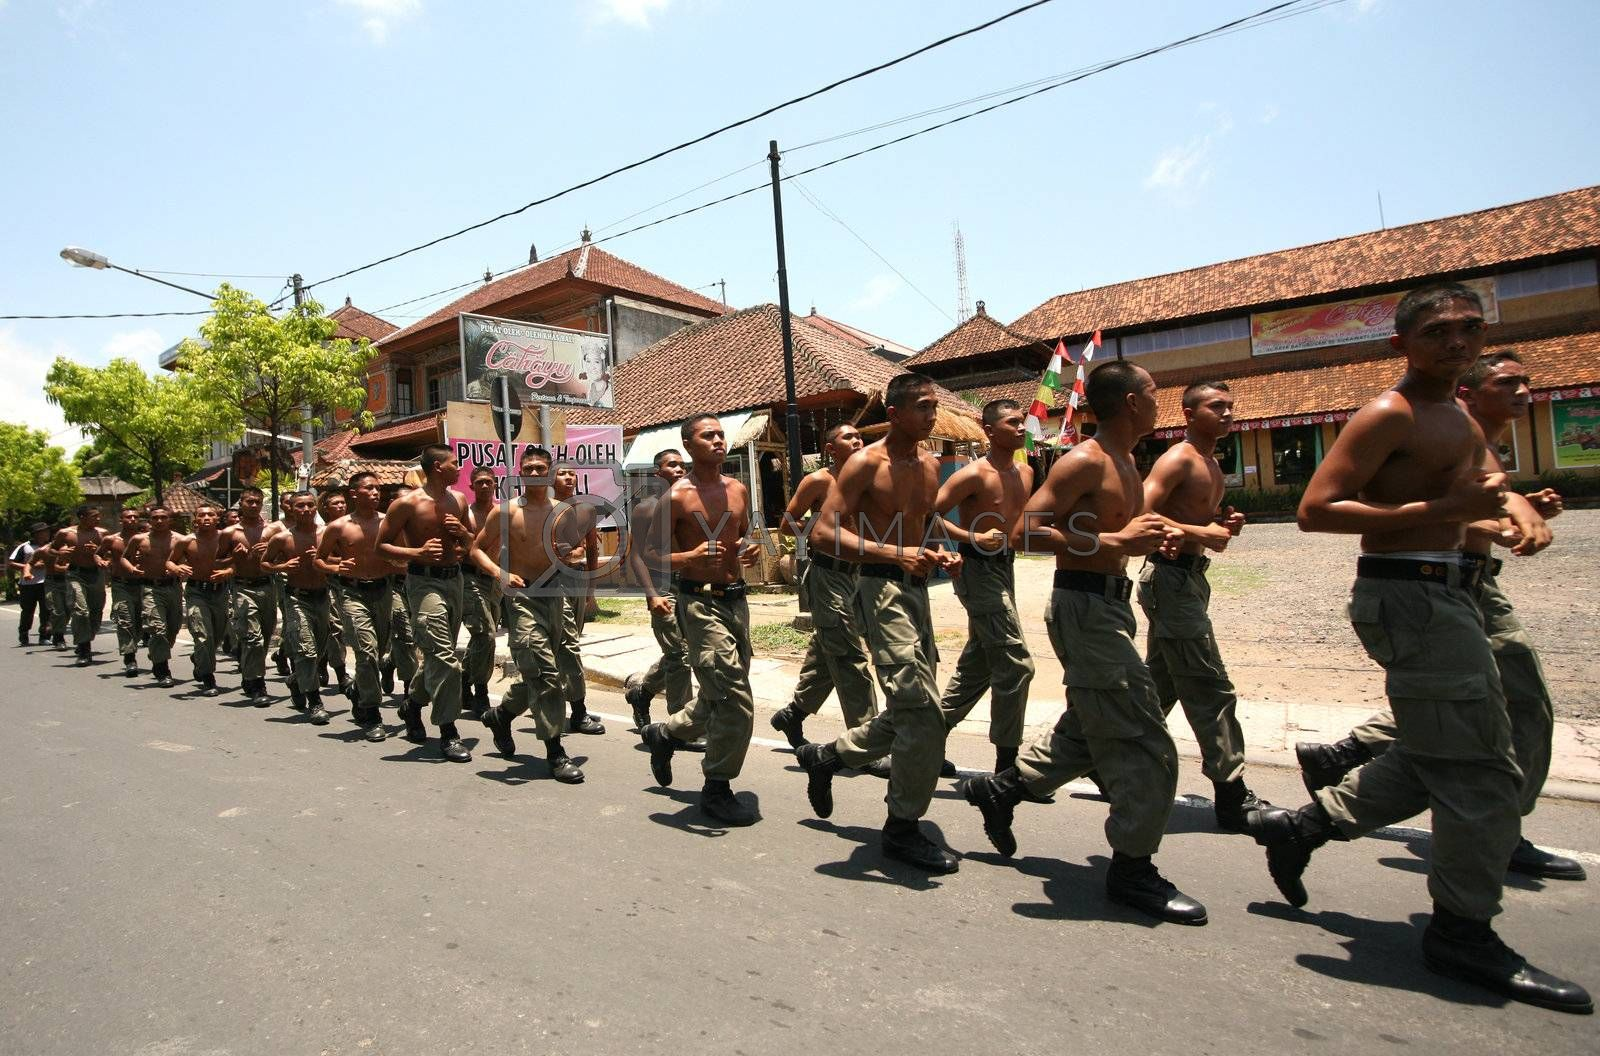 Soldiers on street. Bali. Indonesia